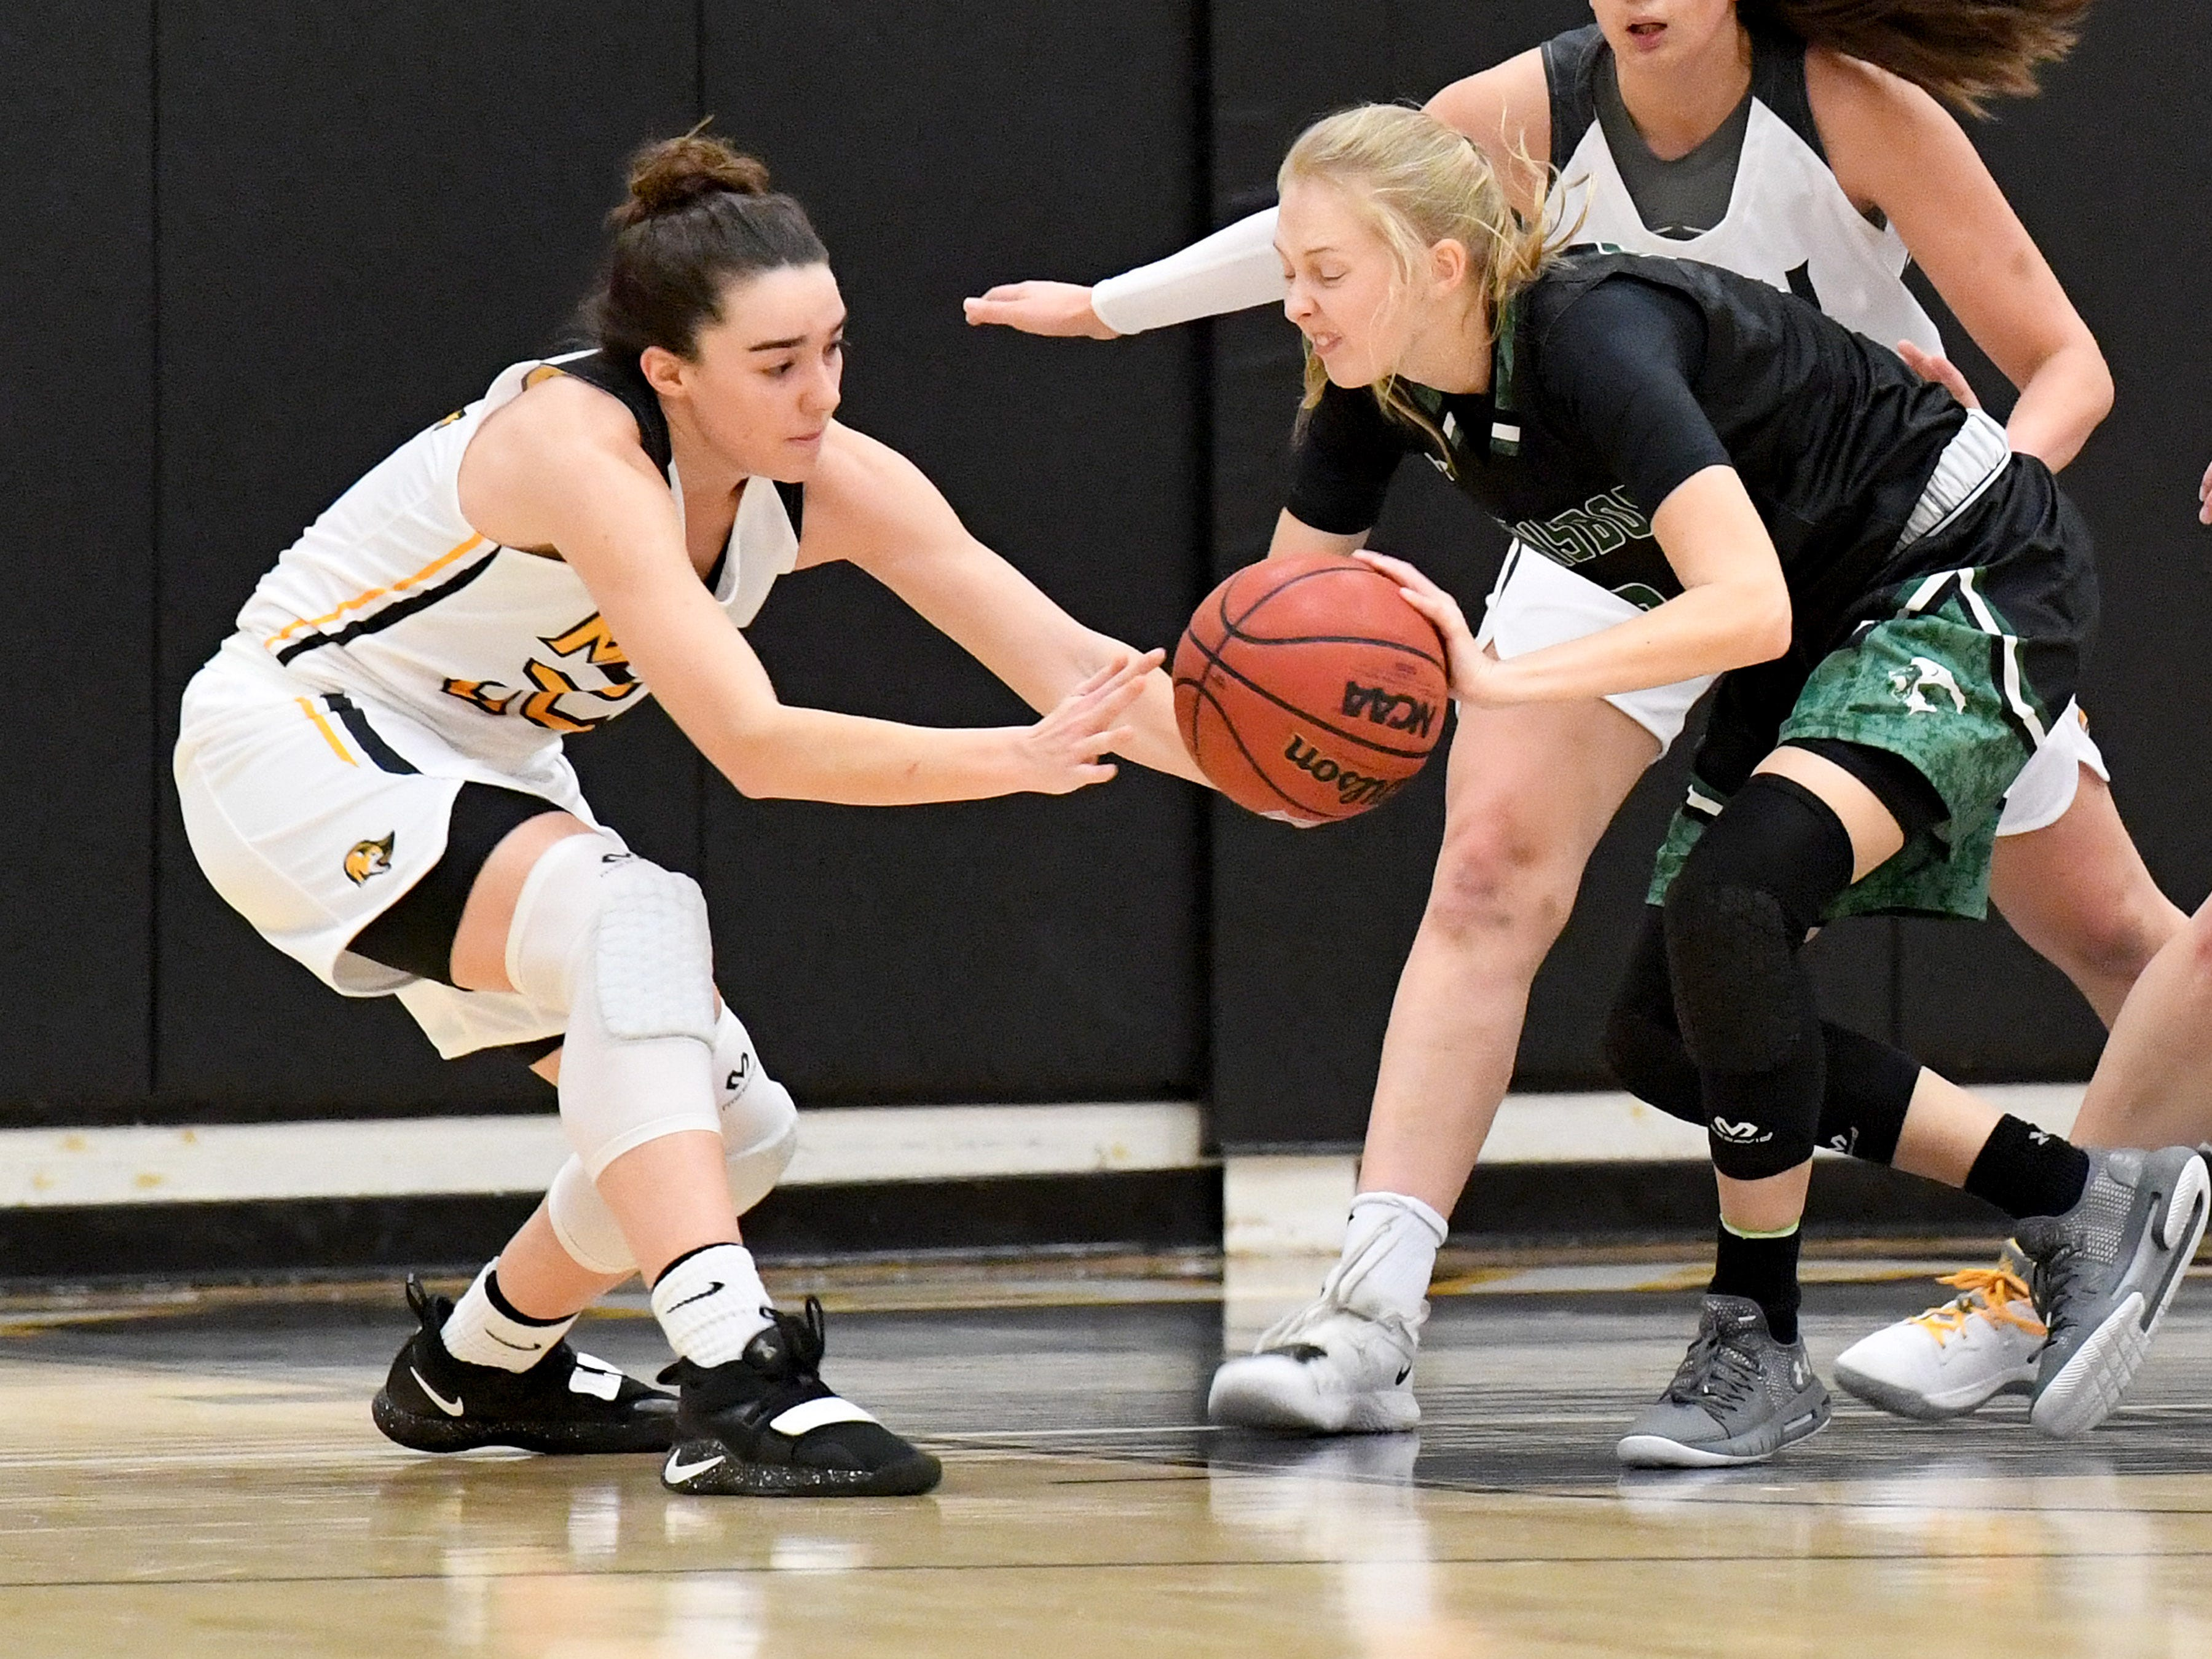 Mary Baldwin's Leah Calhoun (left) slips in to take the ball from Greensboro's Nyla Issac during a USA South conference game played in Staunton on Jan. 9, 2019.